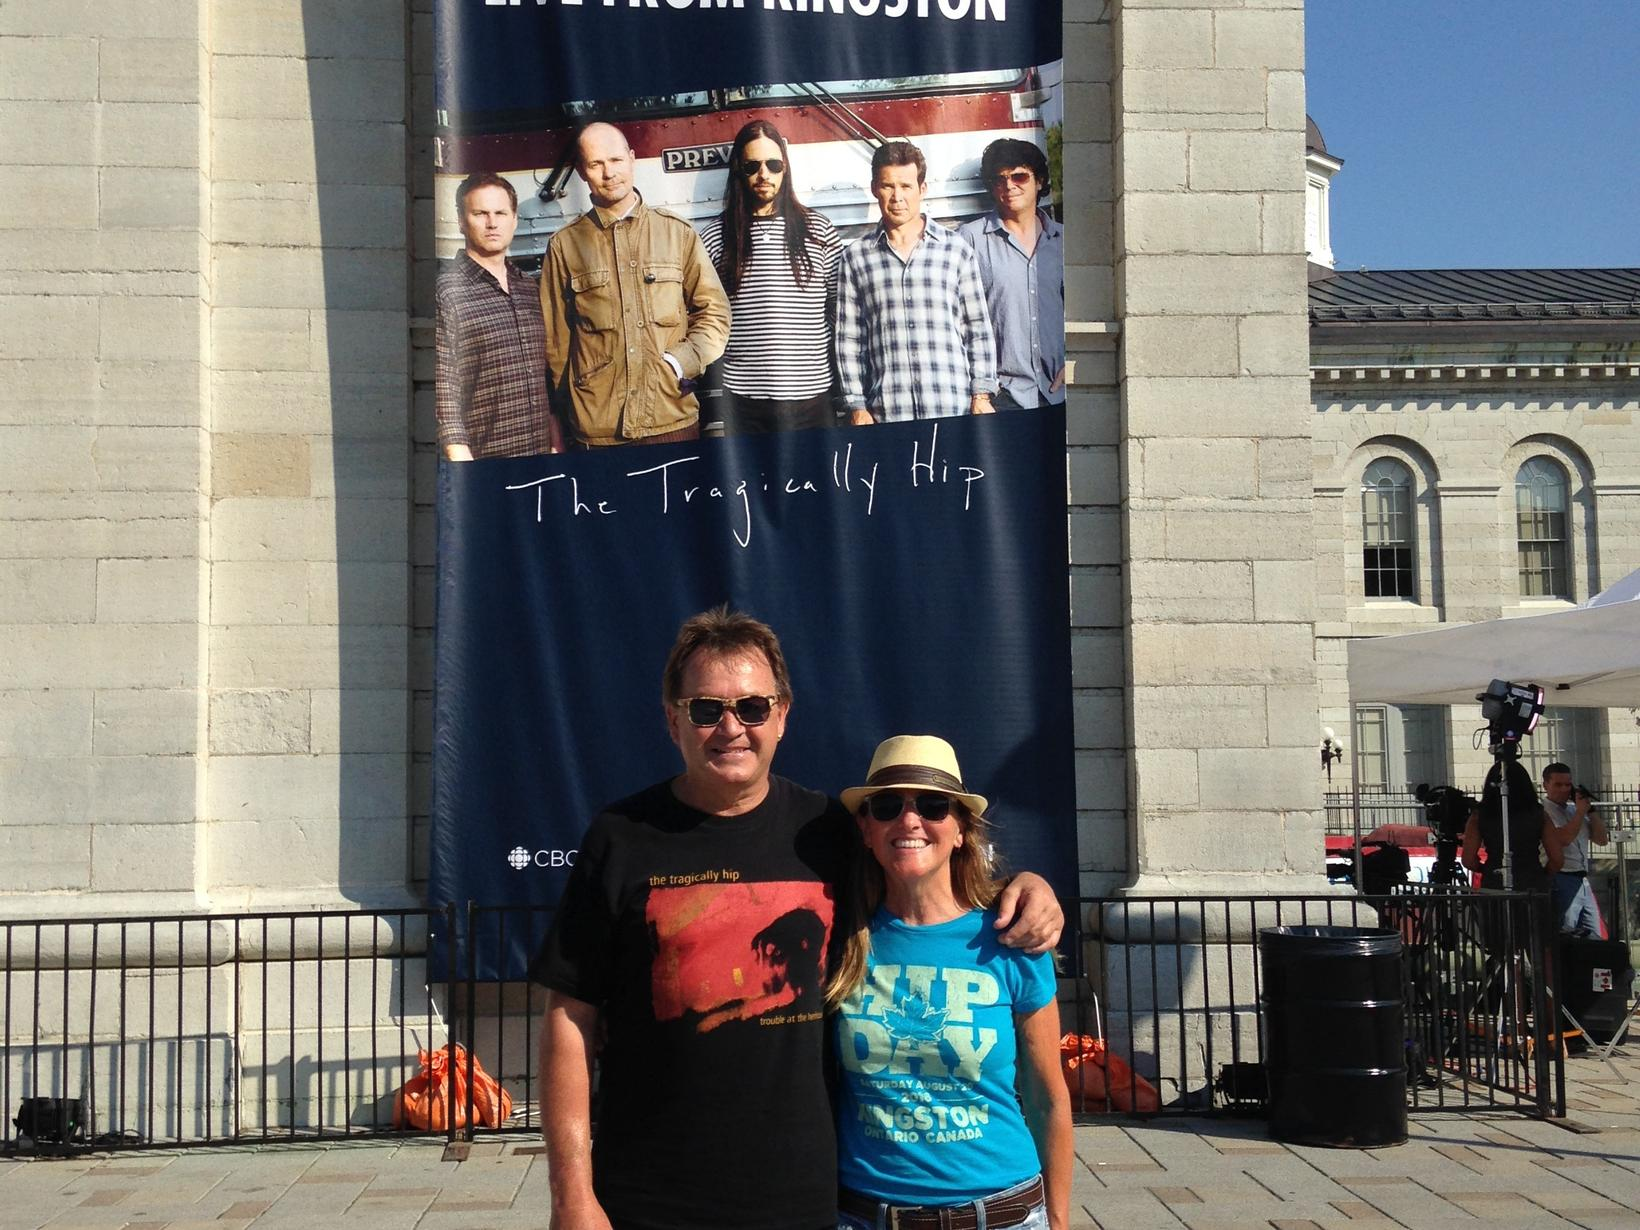 Carrie & Dan from Stirling, Ontario, Canada